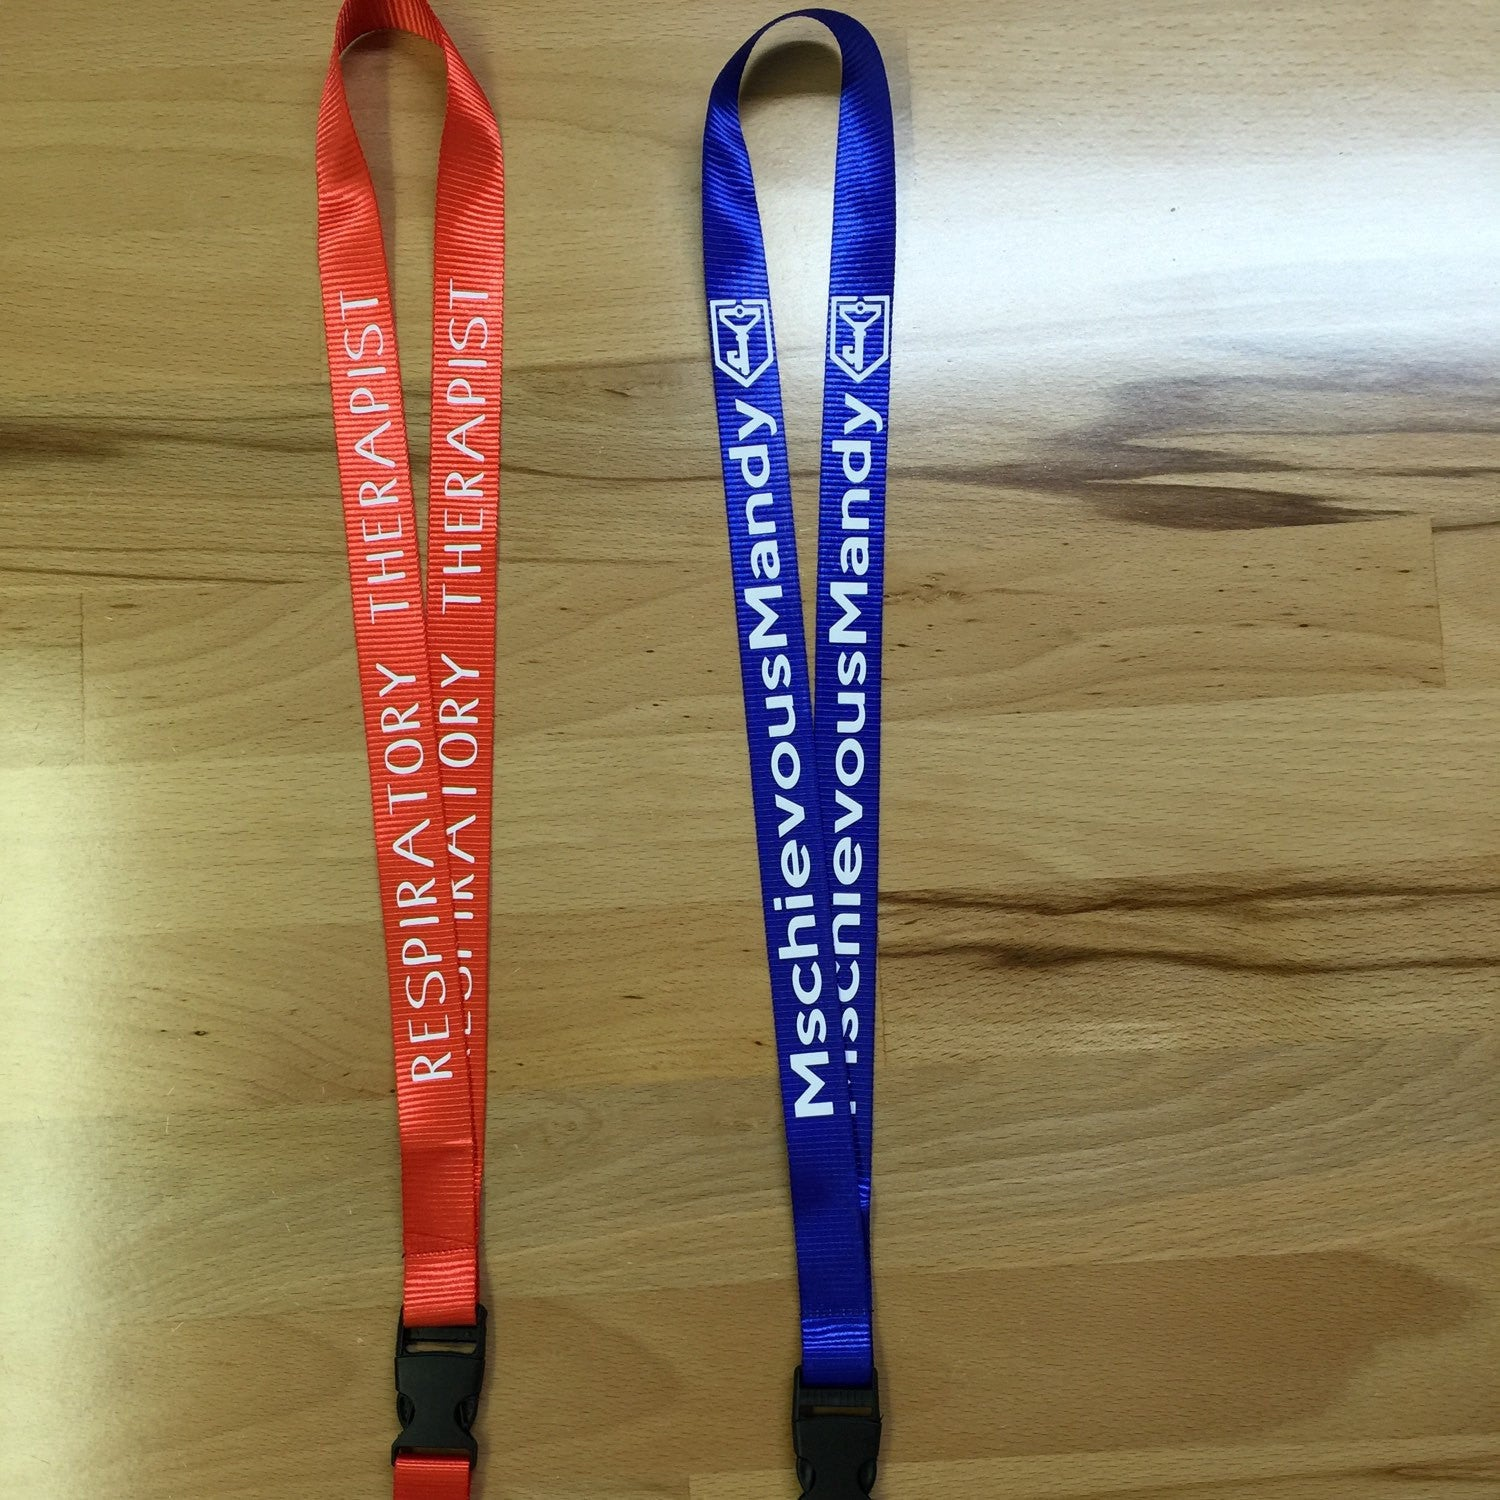 Lanyards For Work And Fun!